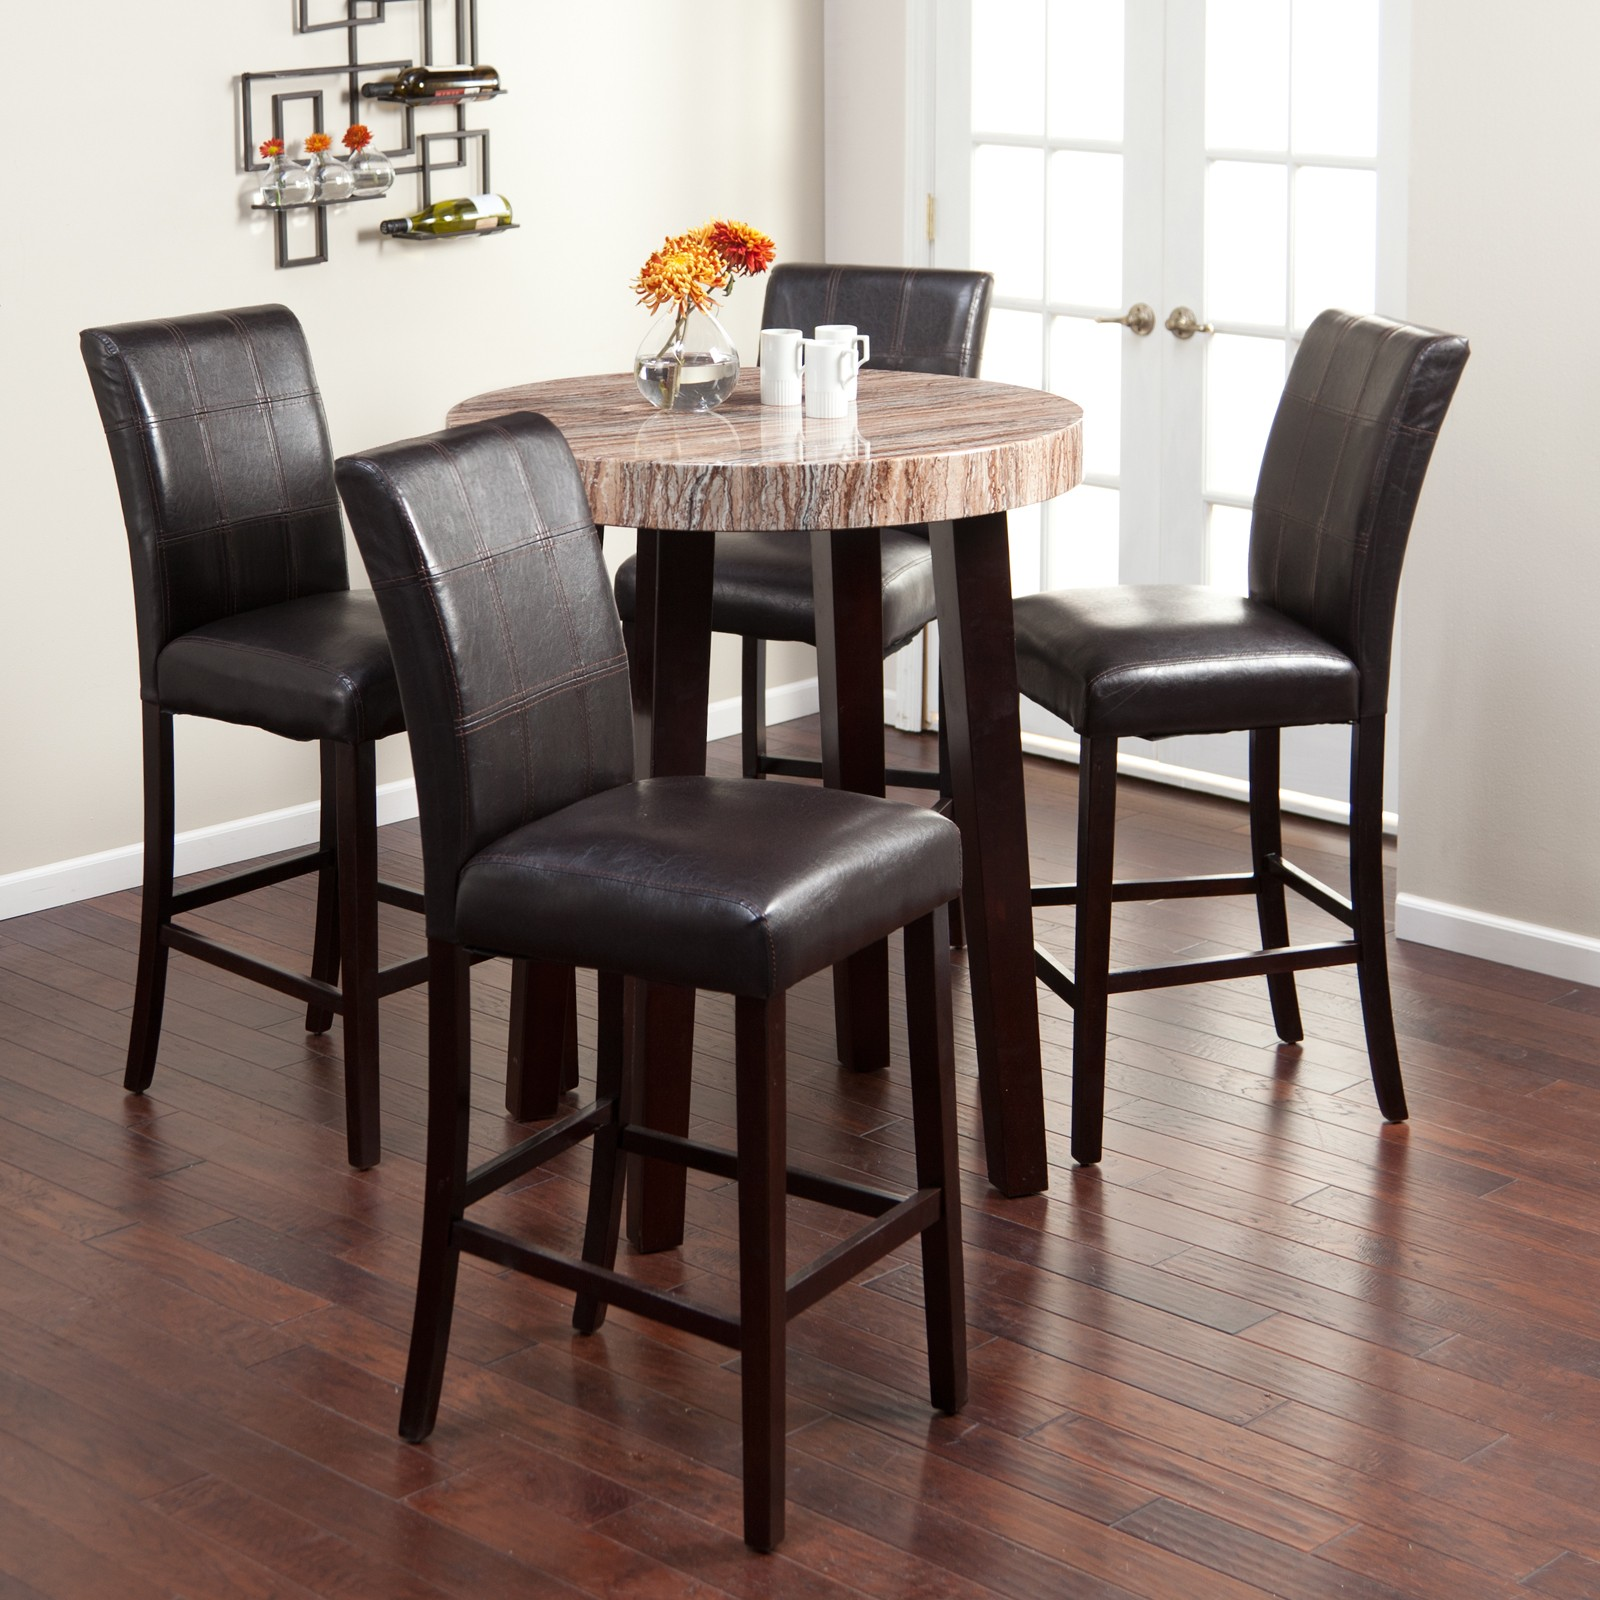 Charmant Black High Top Kitchen Table